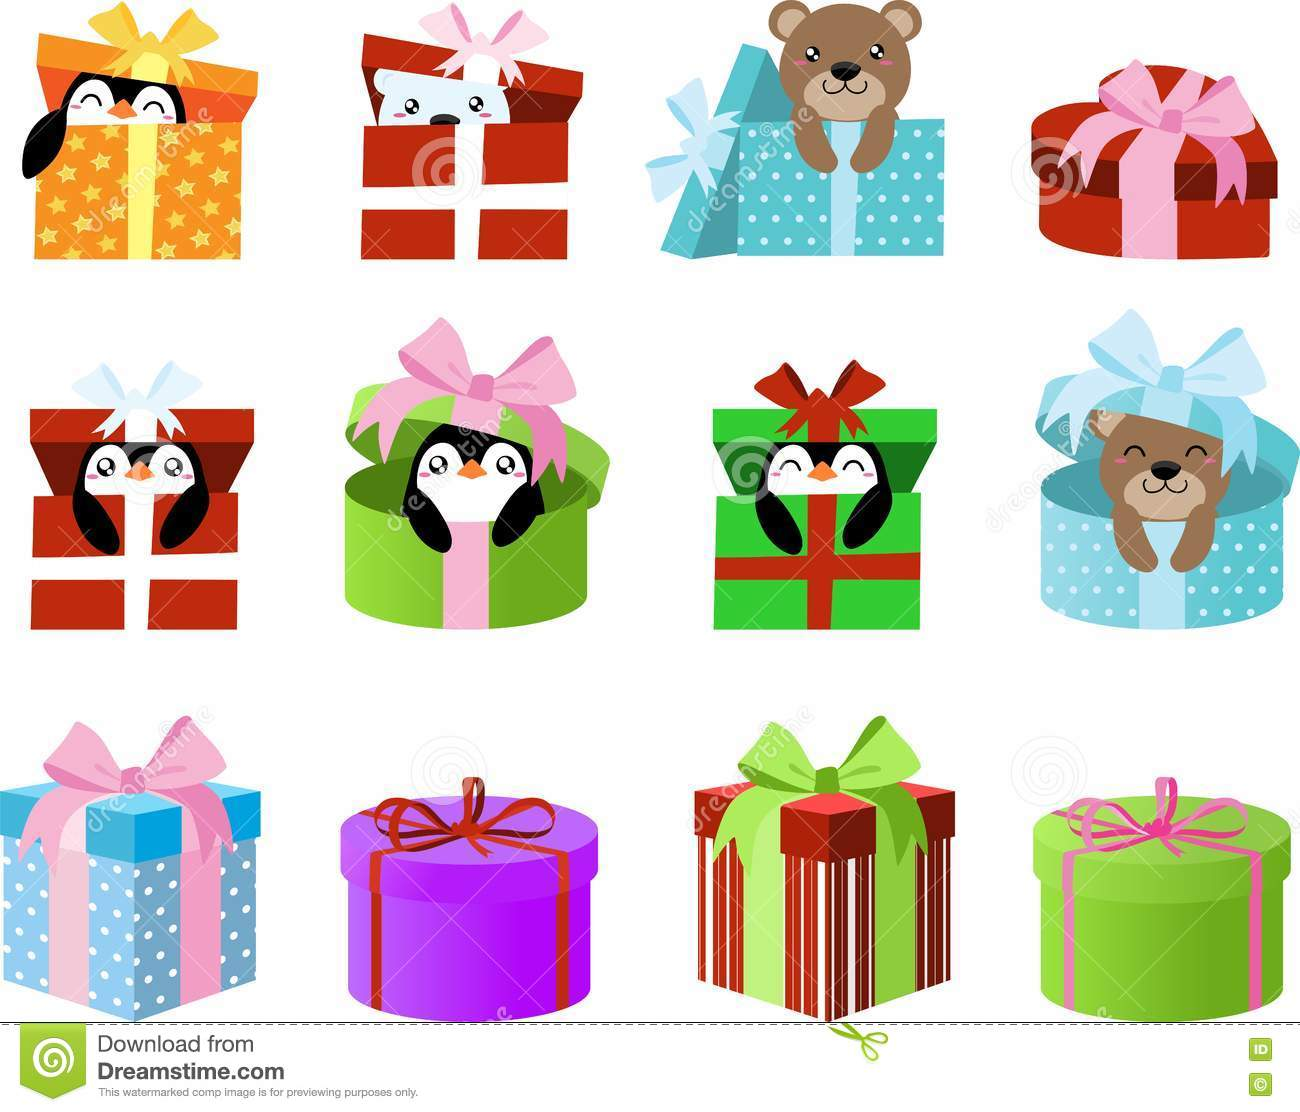 Cute Gift Boxes Clipart With Penguins And Bears Inside. Clip Art For.